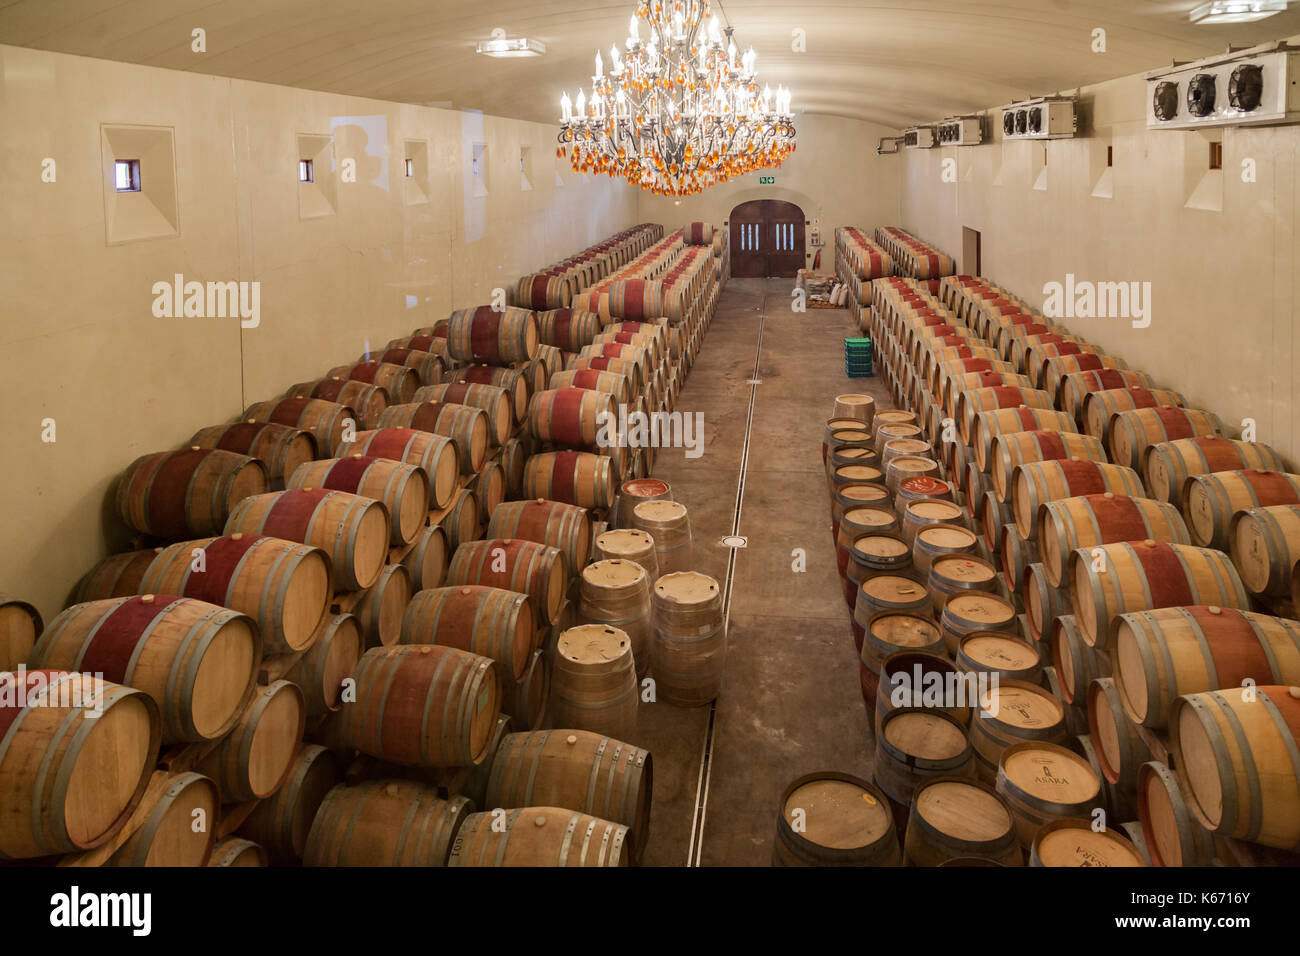 Asara Winery Cave Stellenbosch South Africa Stock Photo